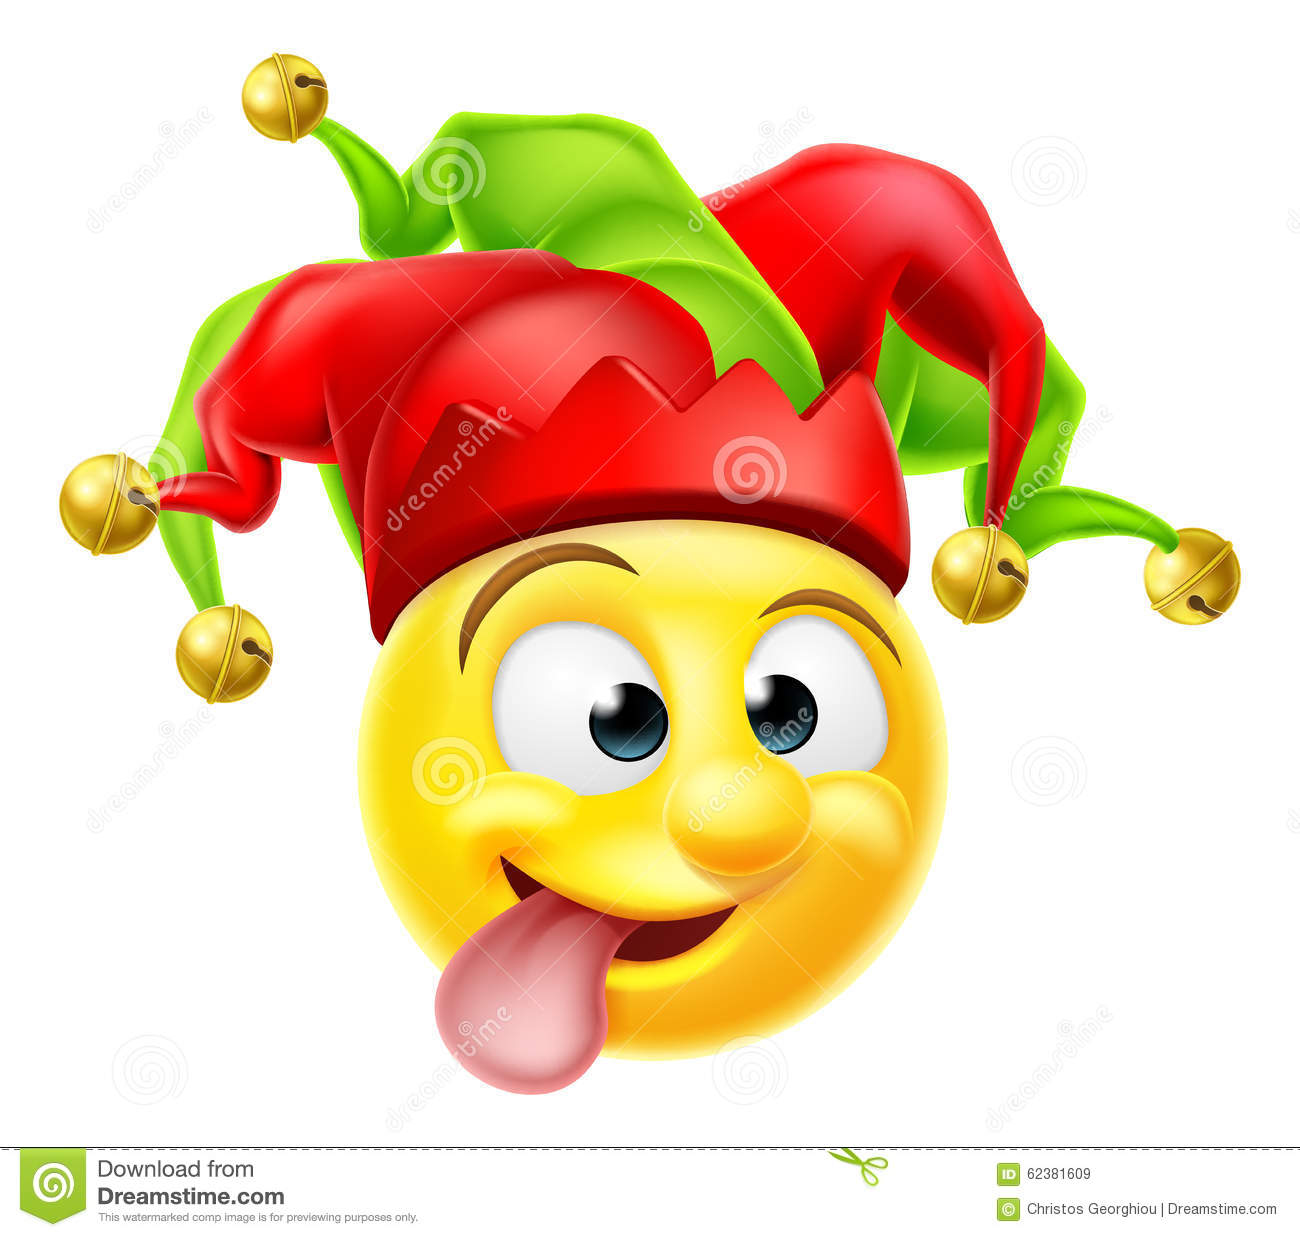 Cour Jester Emoji Emoticon Illustration De Vecteur Image